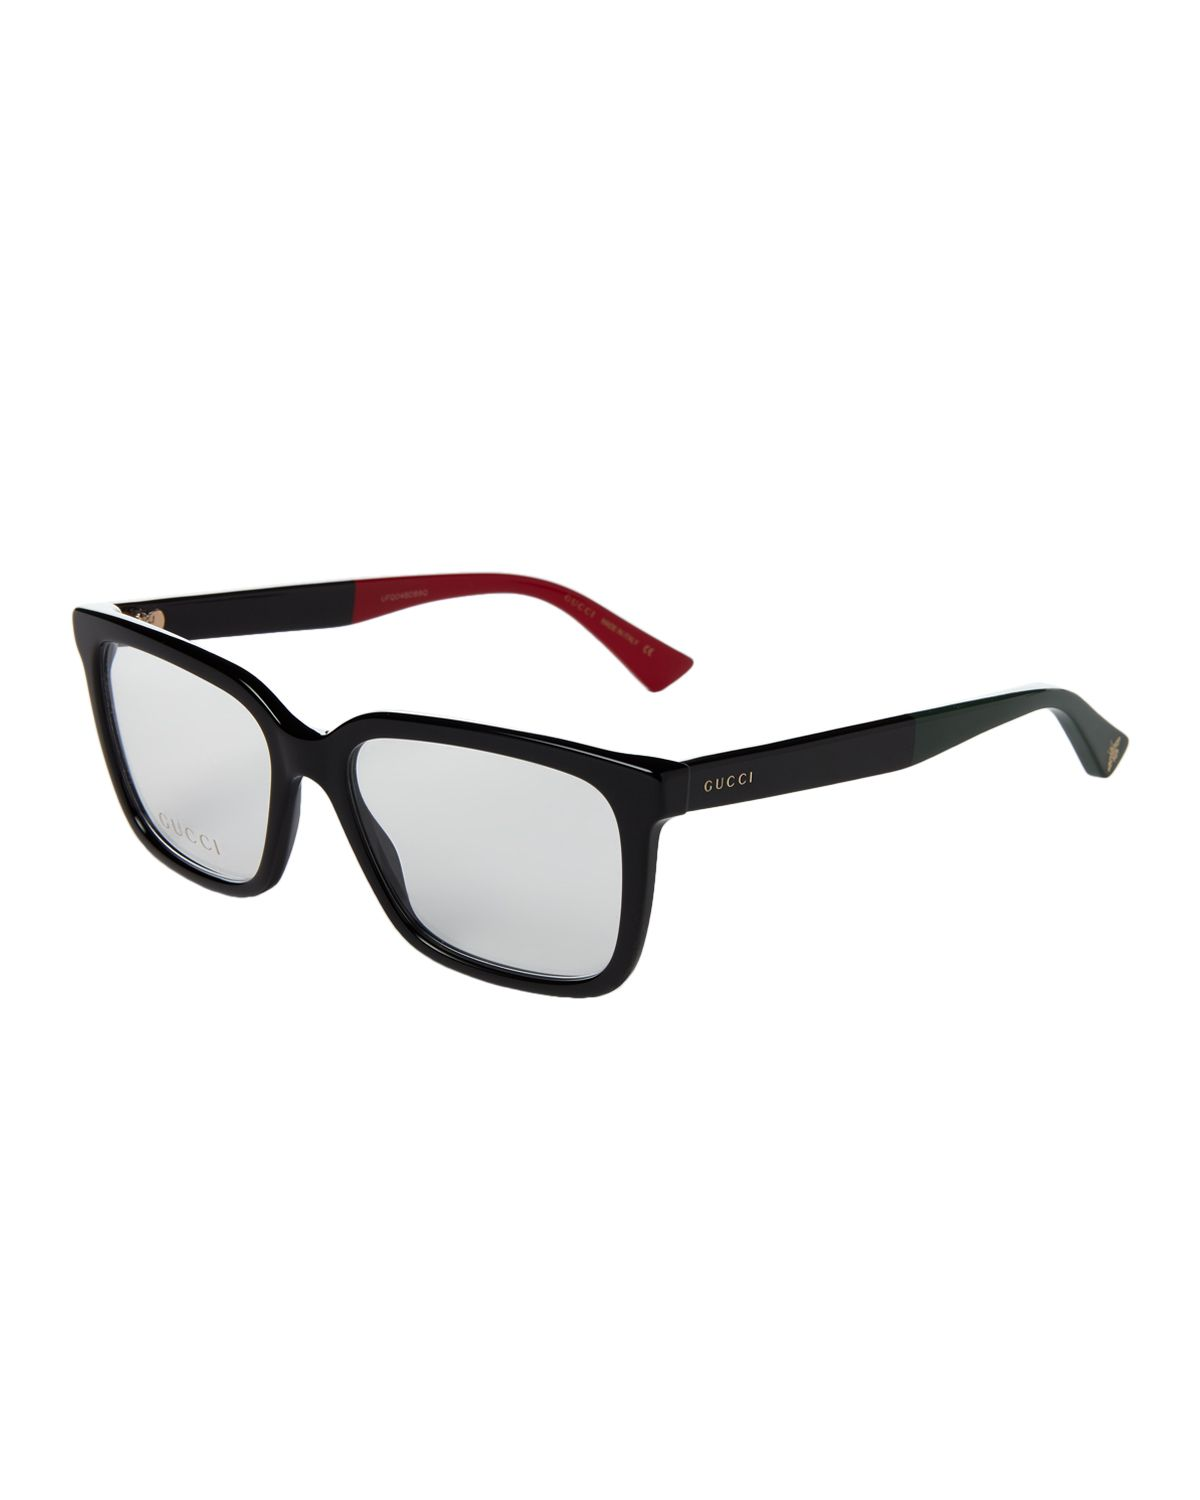 6b63d42280a Gucci GG 0191OA Black Square Optical Frames